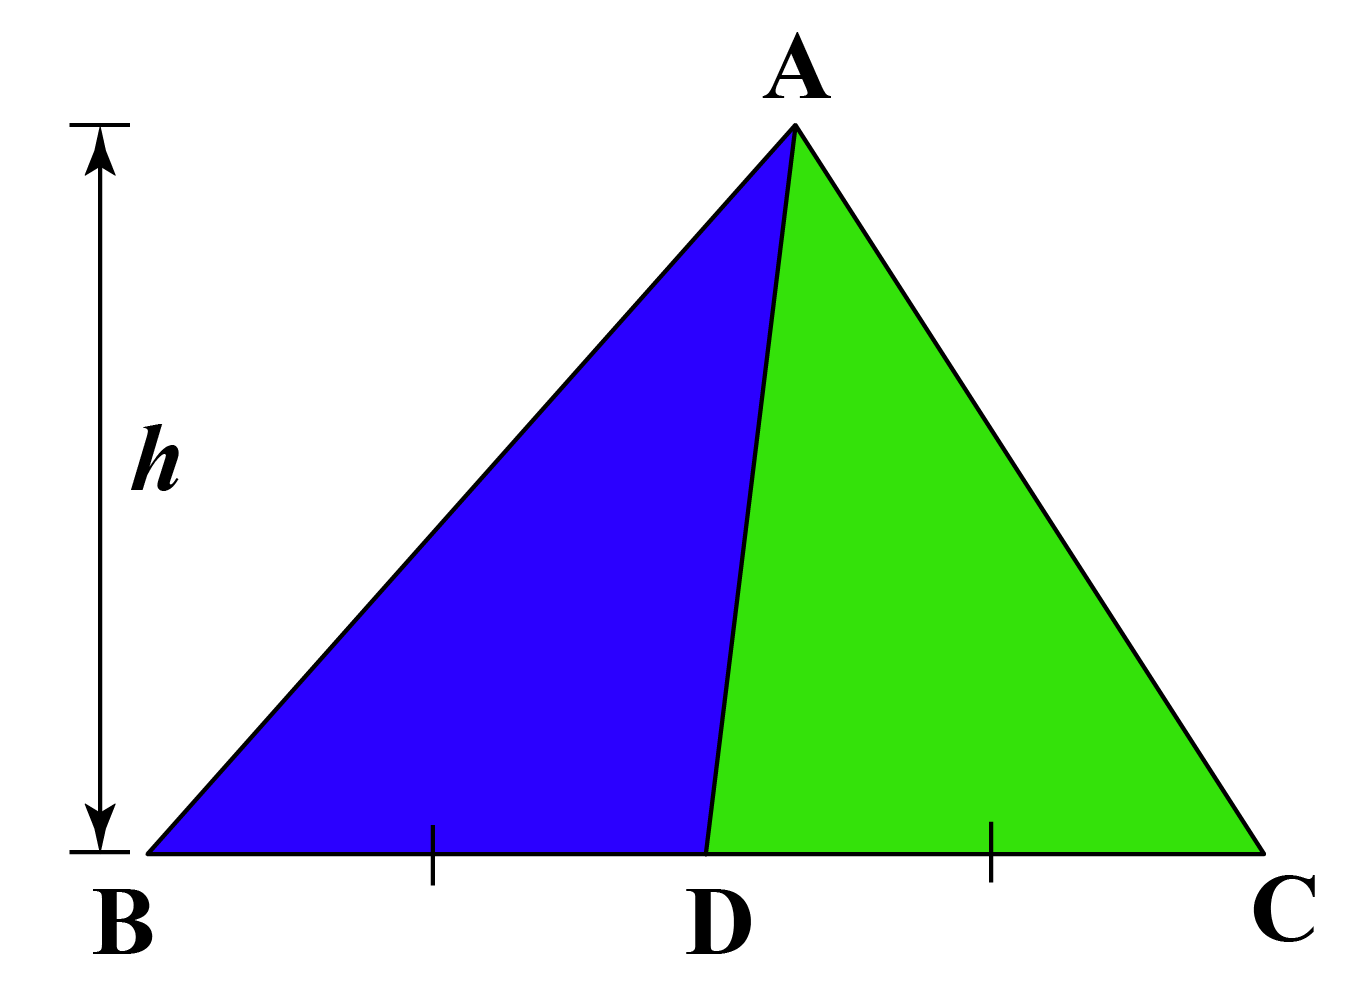 AD is the median of triangle ABC, h = height for two triangles formed by median AD